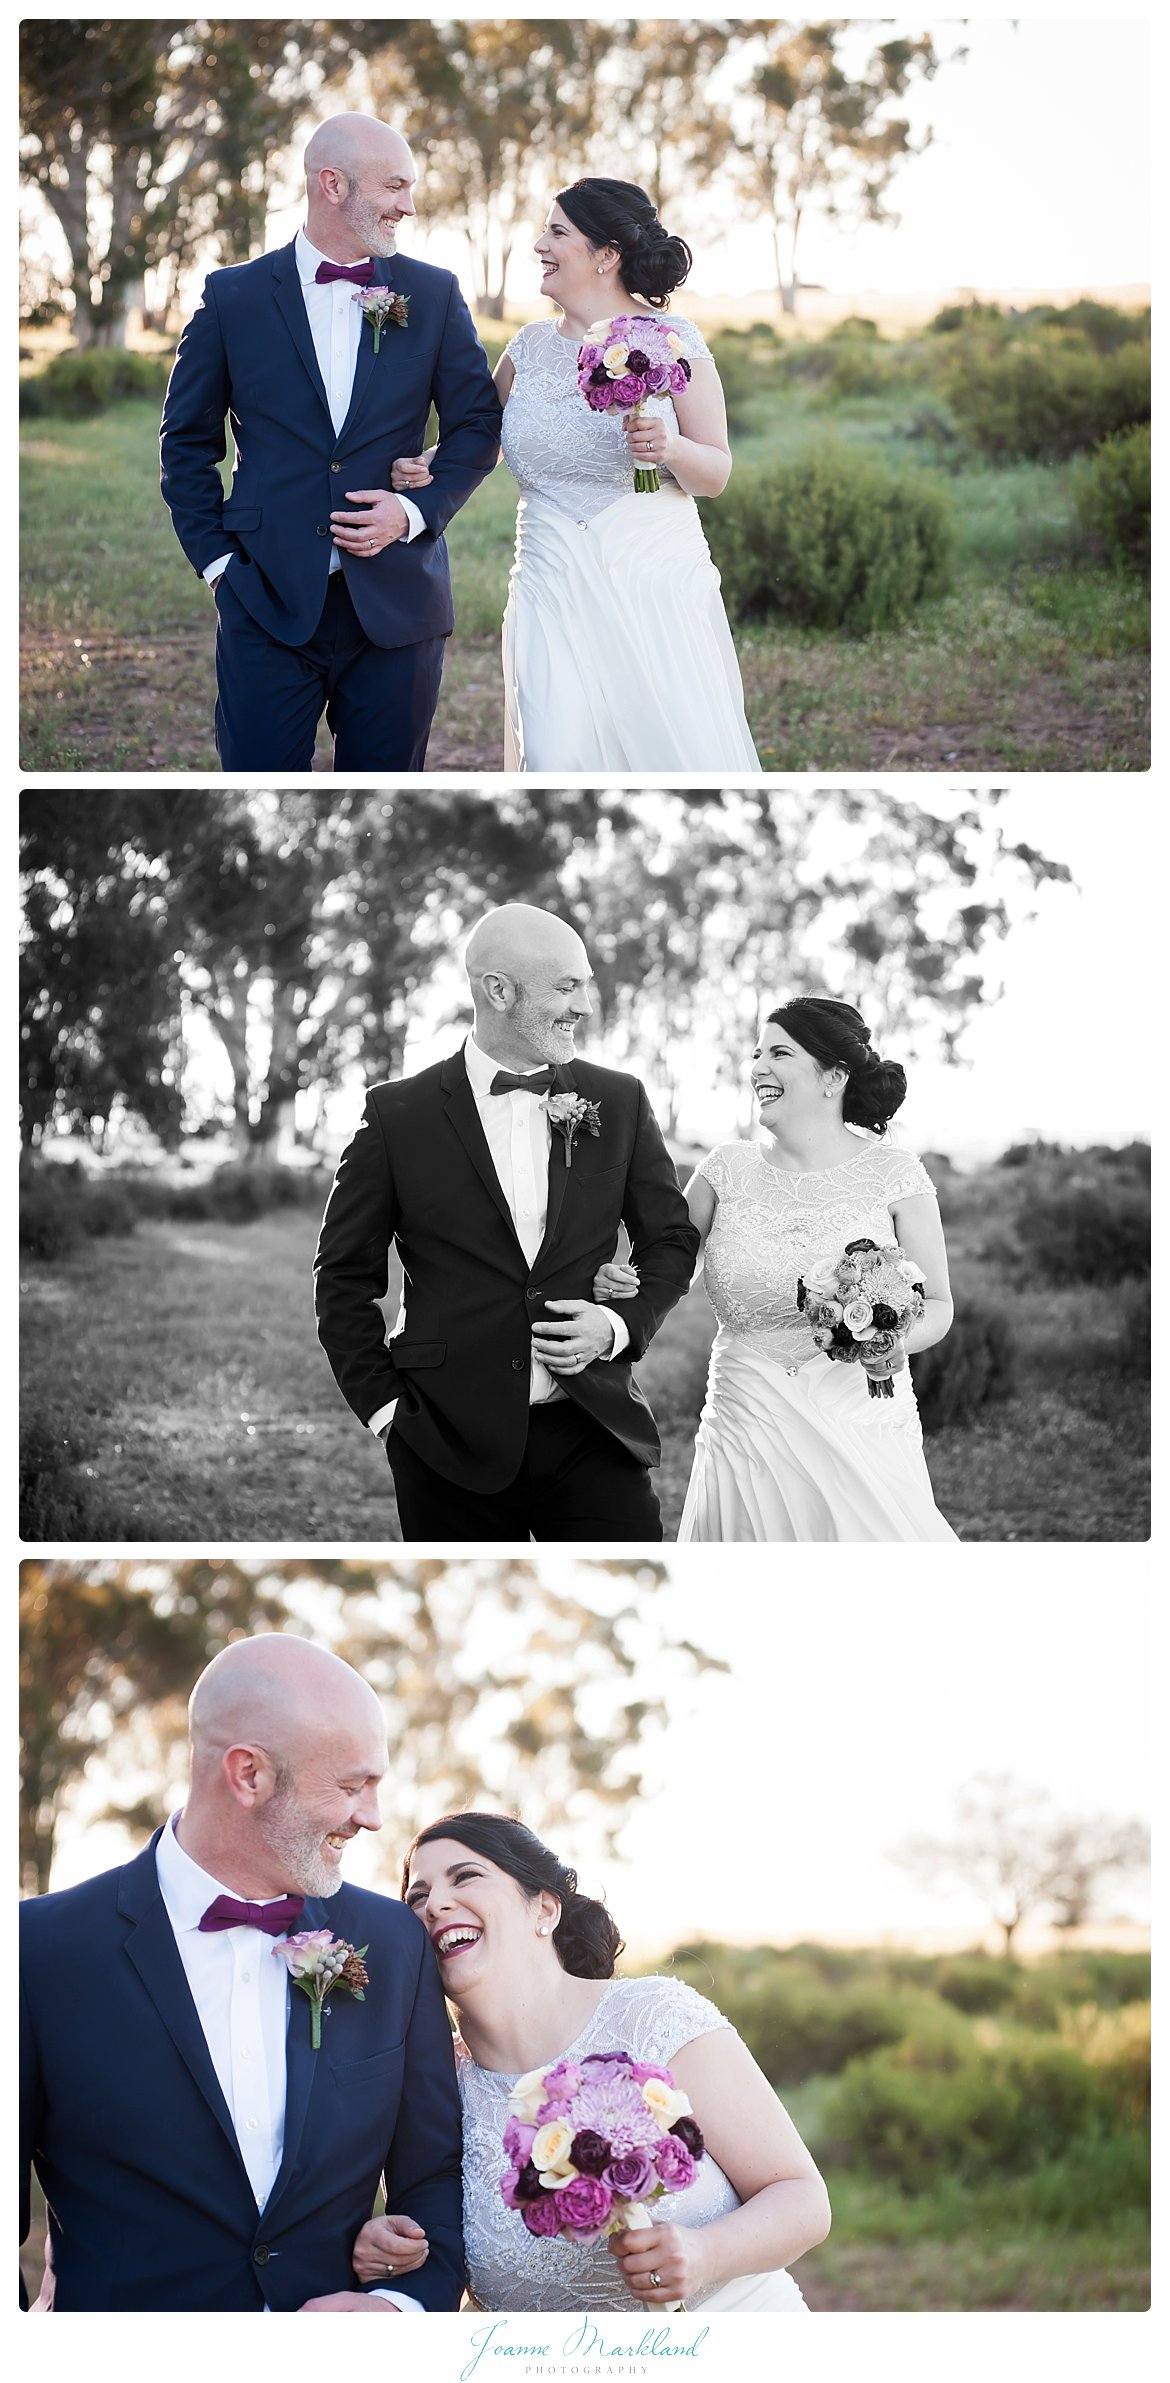 boorwater-wedding-hopefield-west-coast-cape-town-joanne-markland-photography-037